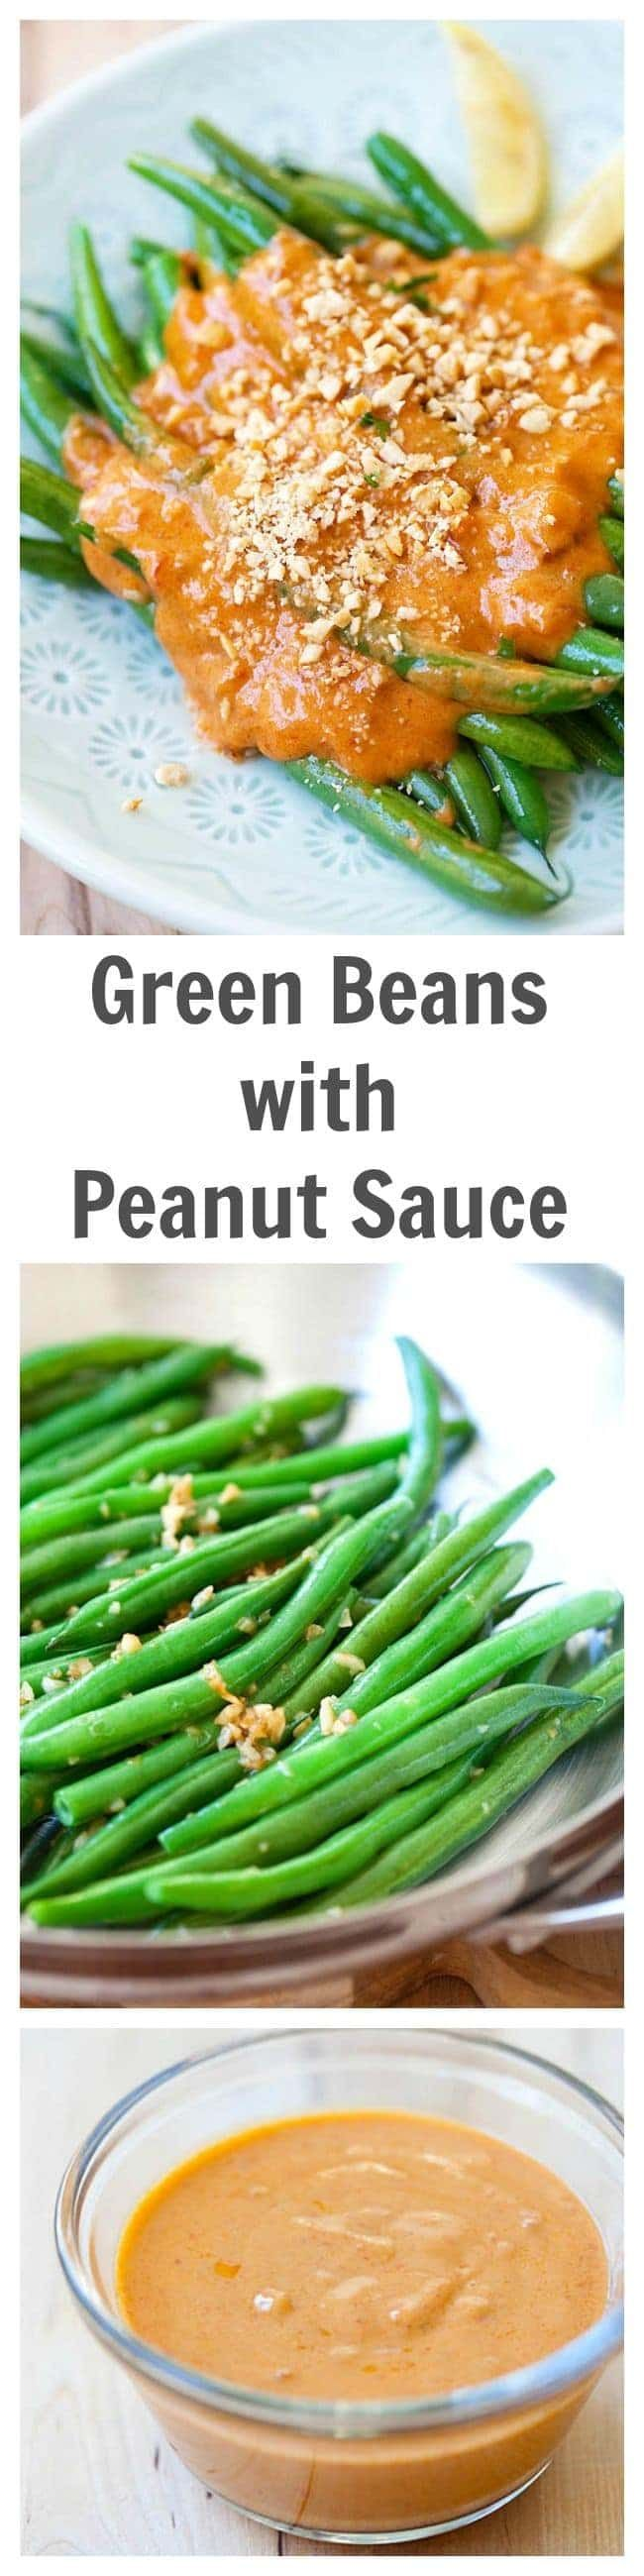 Green beans with peanut sauce. Saute green beans with garlic and top them with spicy and savory Thai peanut sauce. Easy, healthy and delicious recipe | rasamalaysia.com